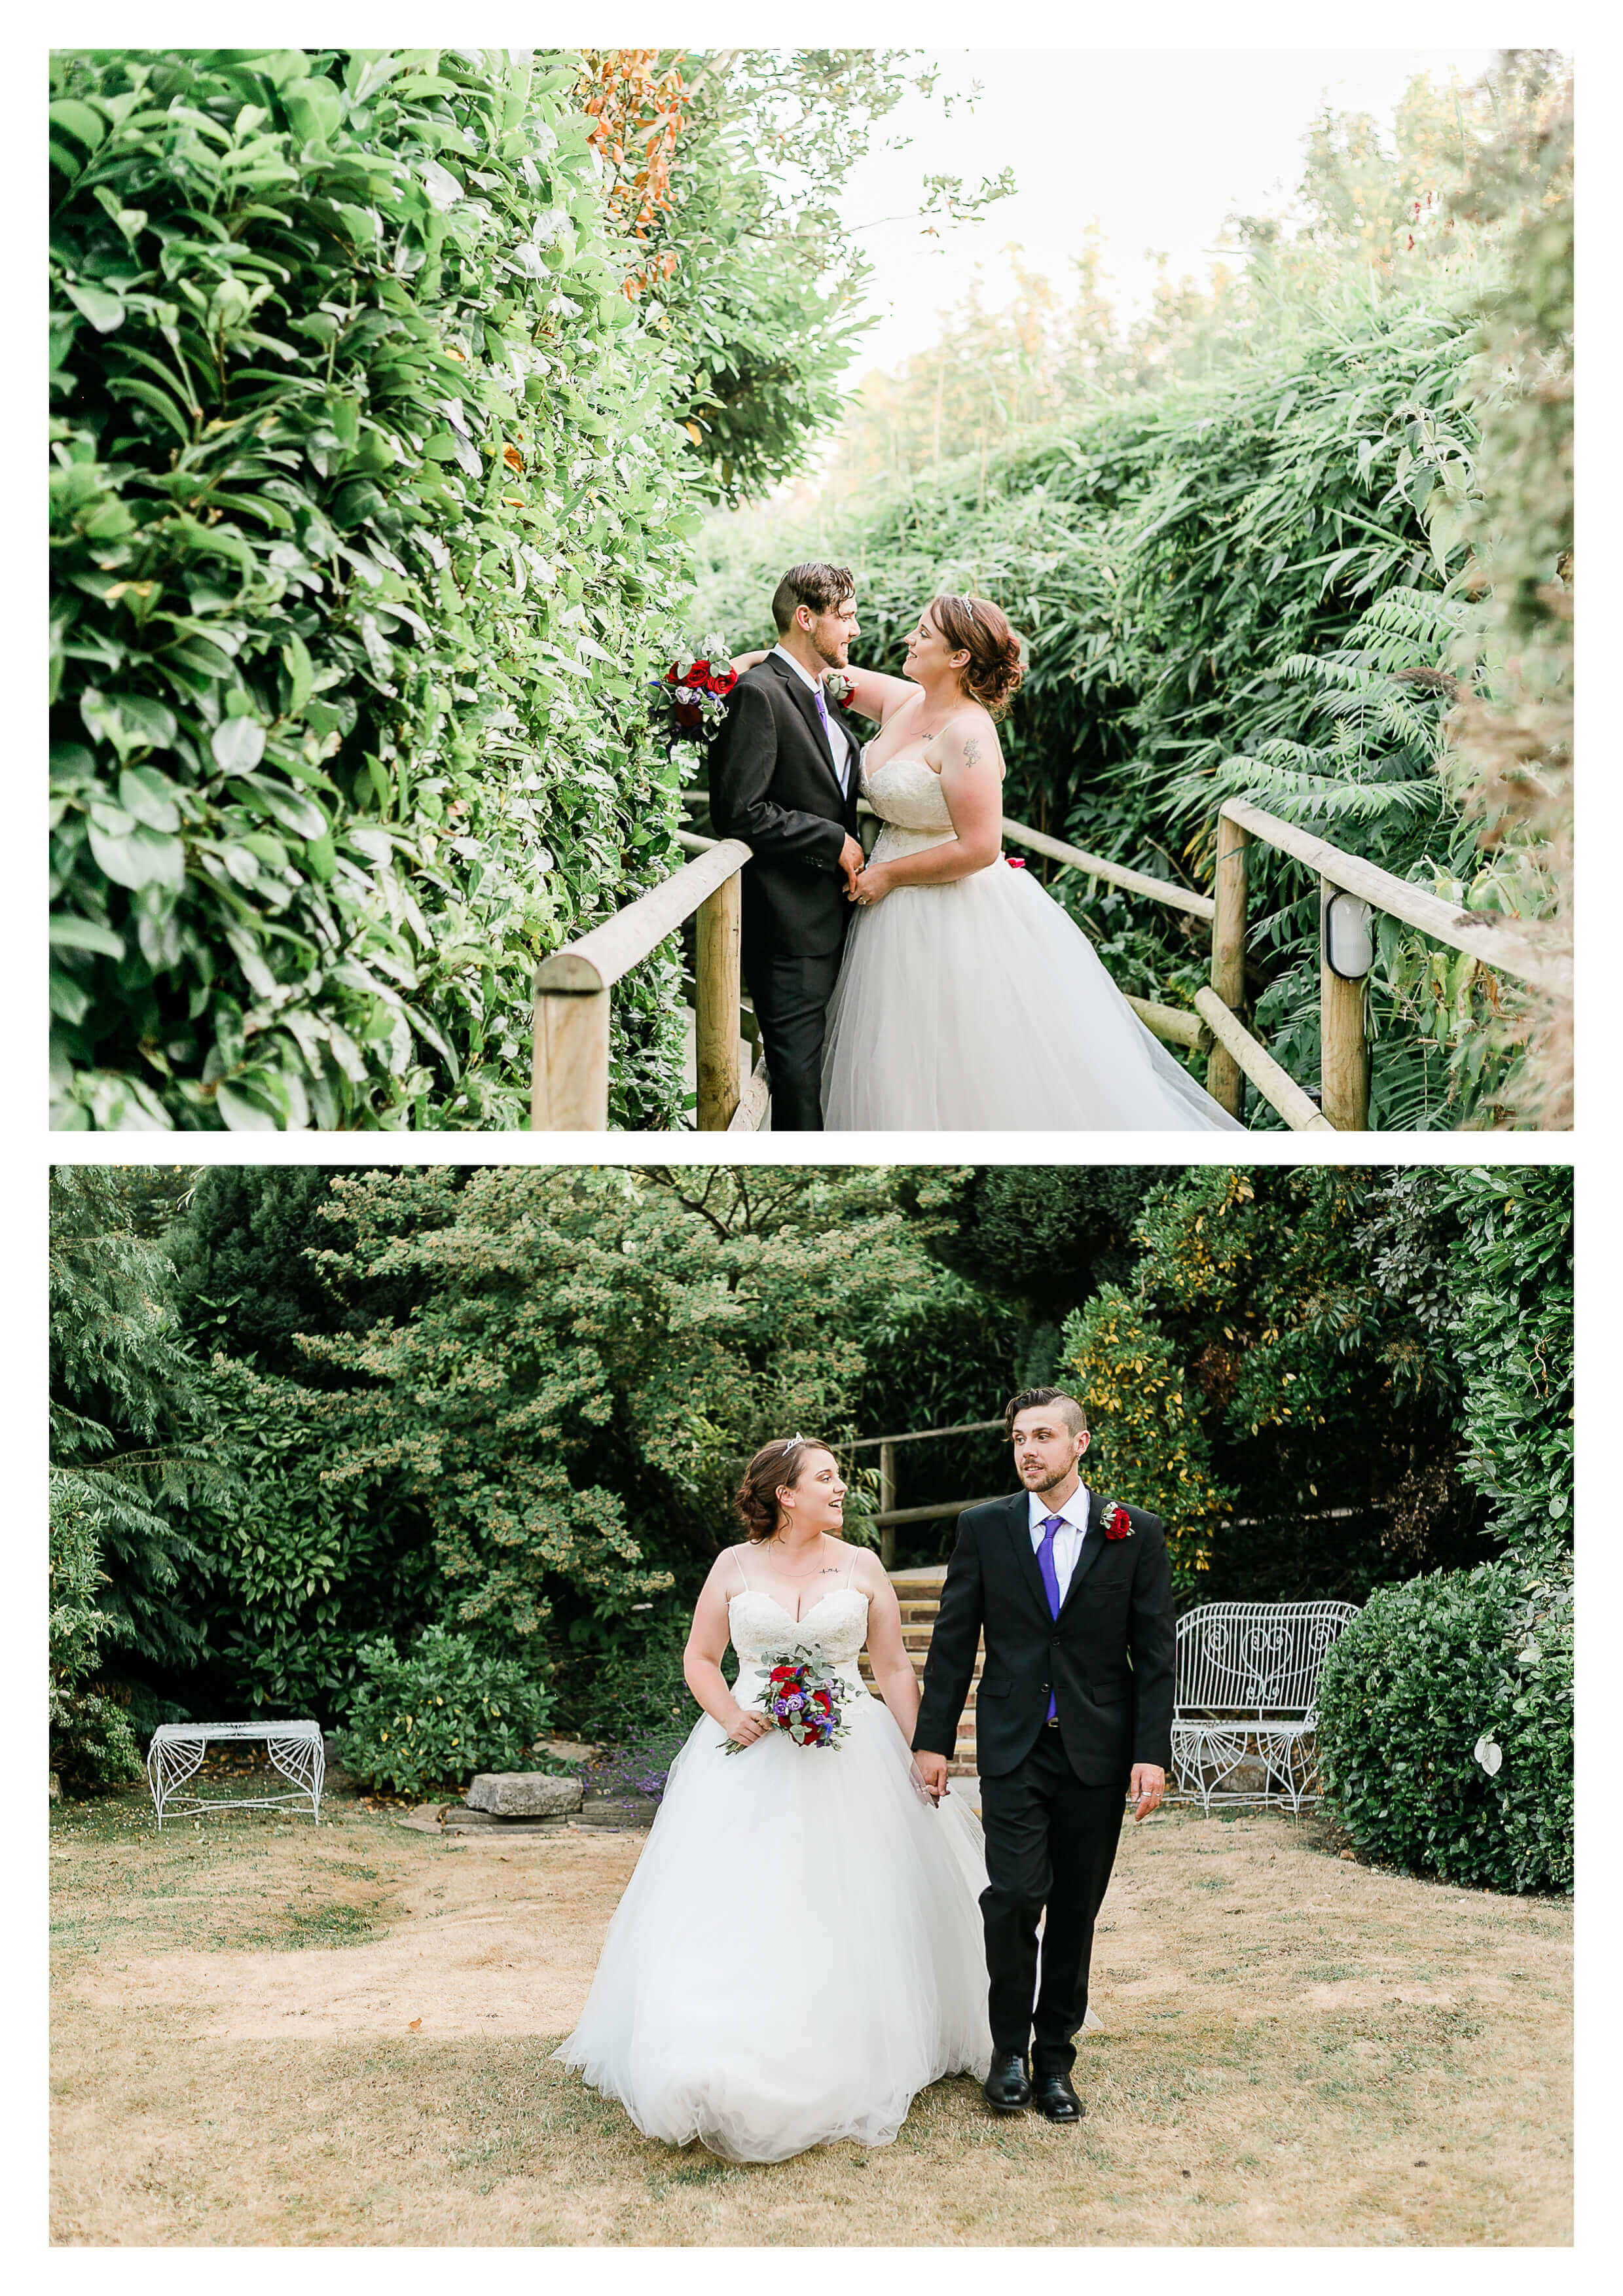 Pelham House Gardens Wedding Couple Portraits | Lewes Wedding Photographer